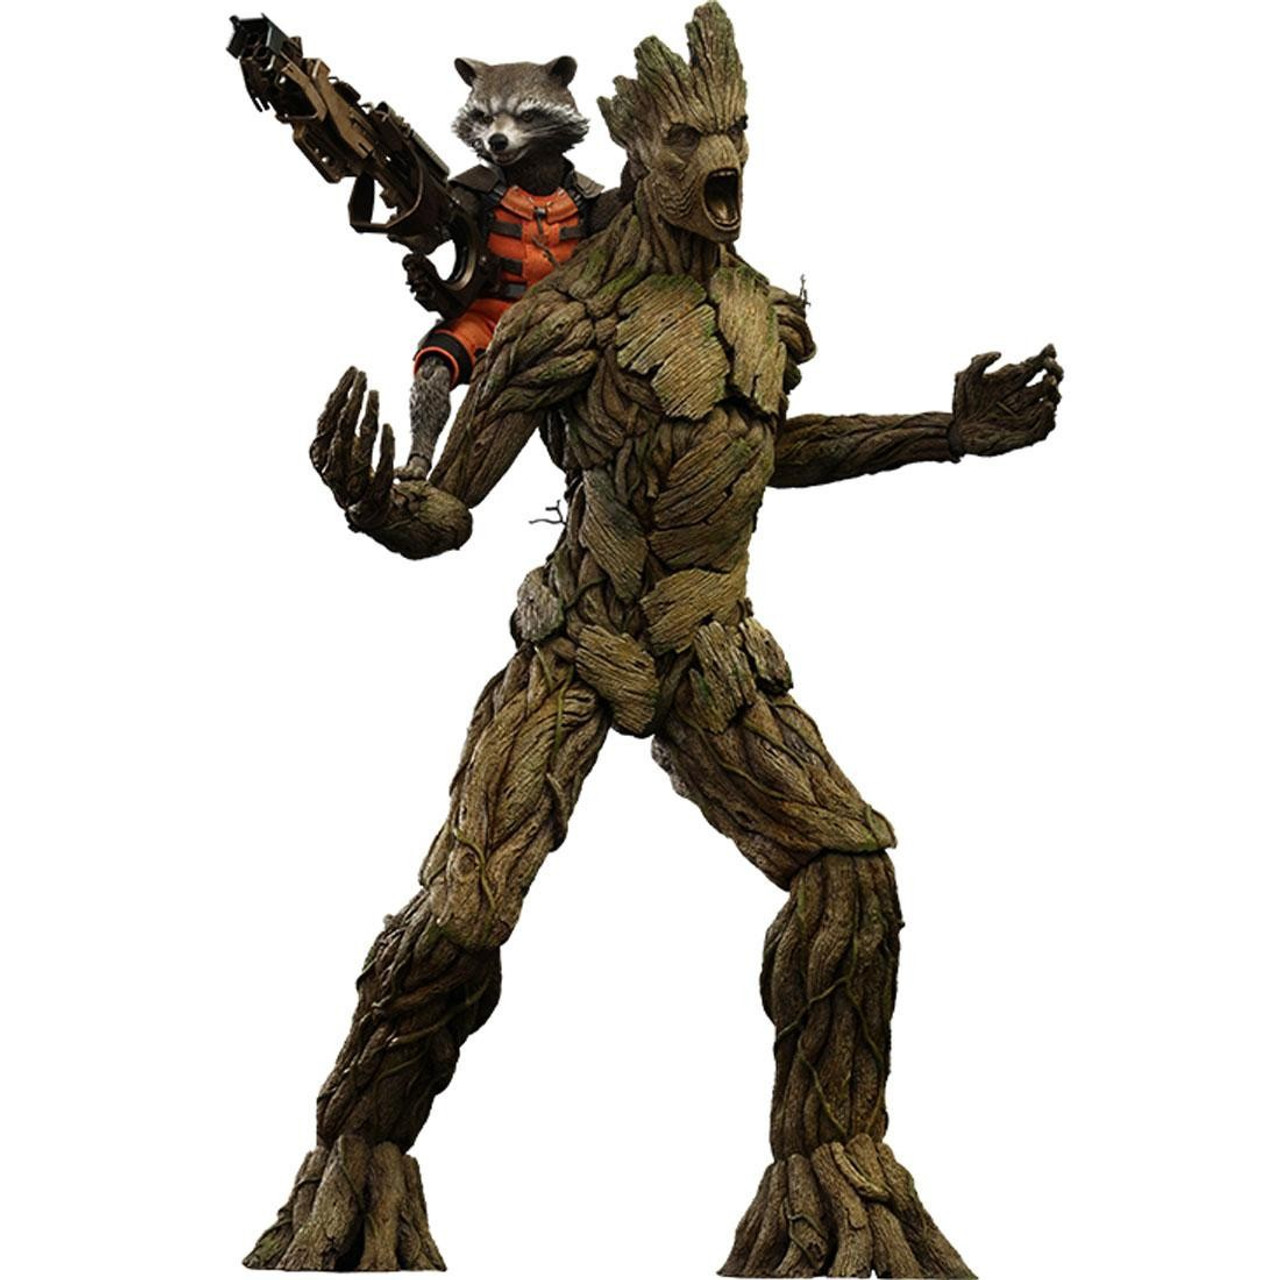 Marvel Guardians of the Galaxy Movie Masterpiece Rocket & Groot 1/6 Collectible Figure Set